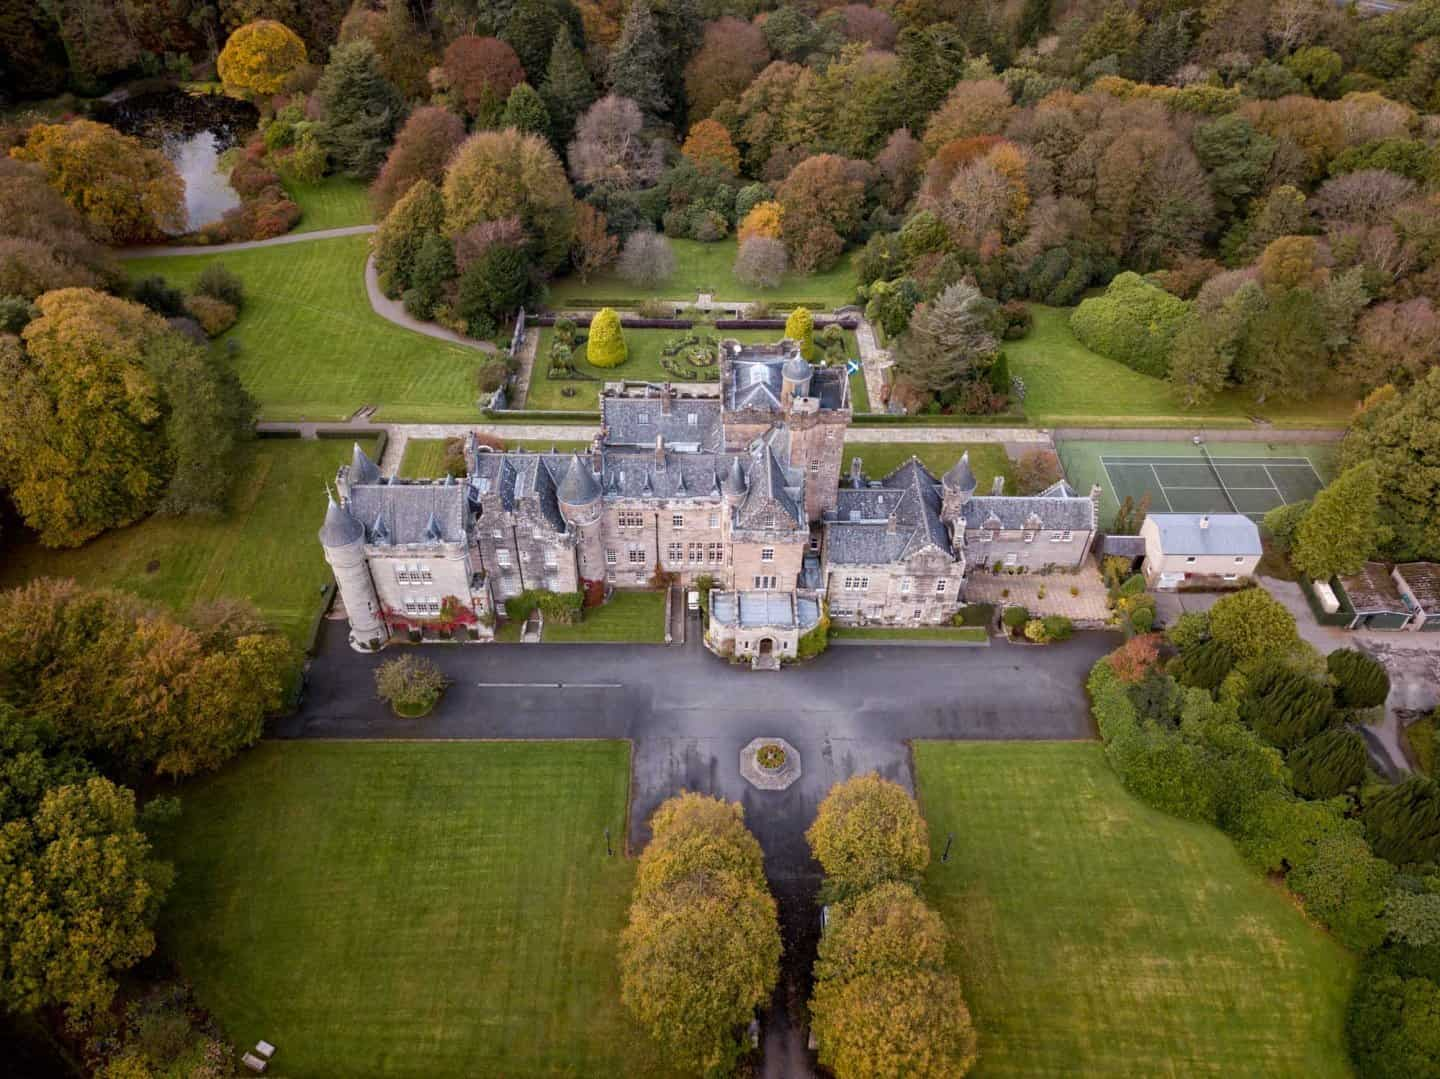 Best castles in Scotland: A drone photo of Glenapp Castle in Scotland.